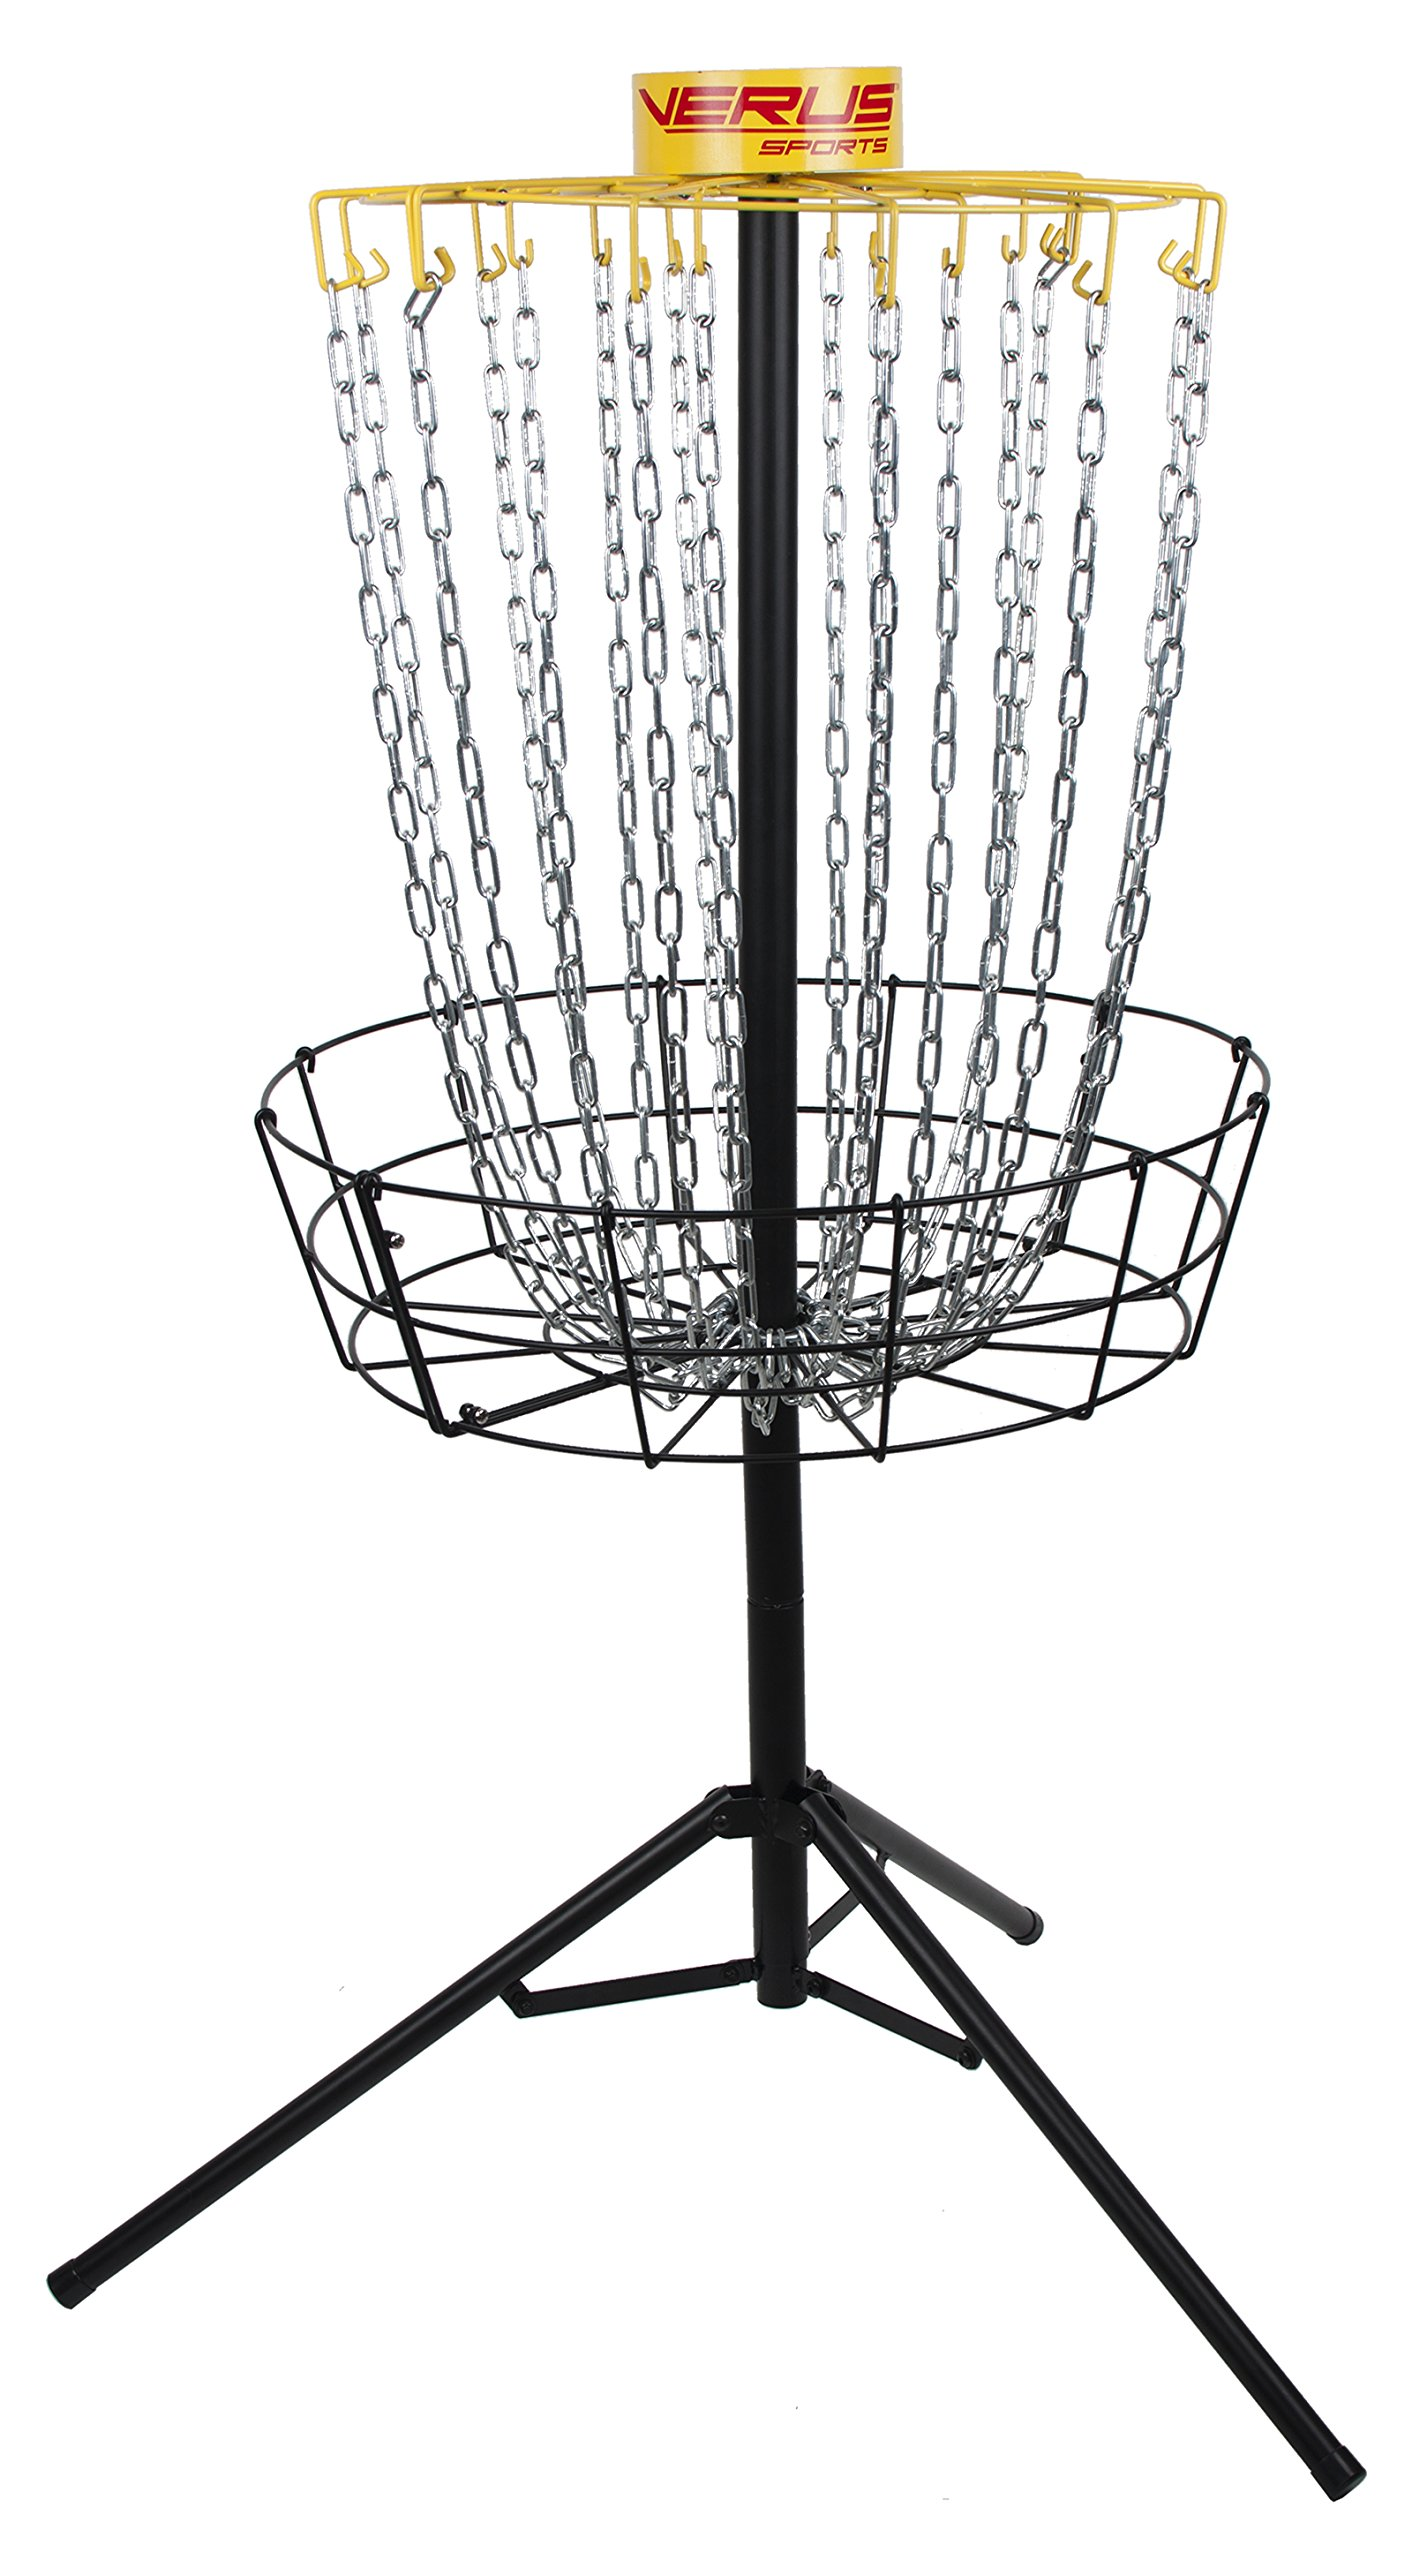 Verus Sports TG460 Regulation Expert Disc Golf Basket, Yellow